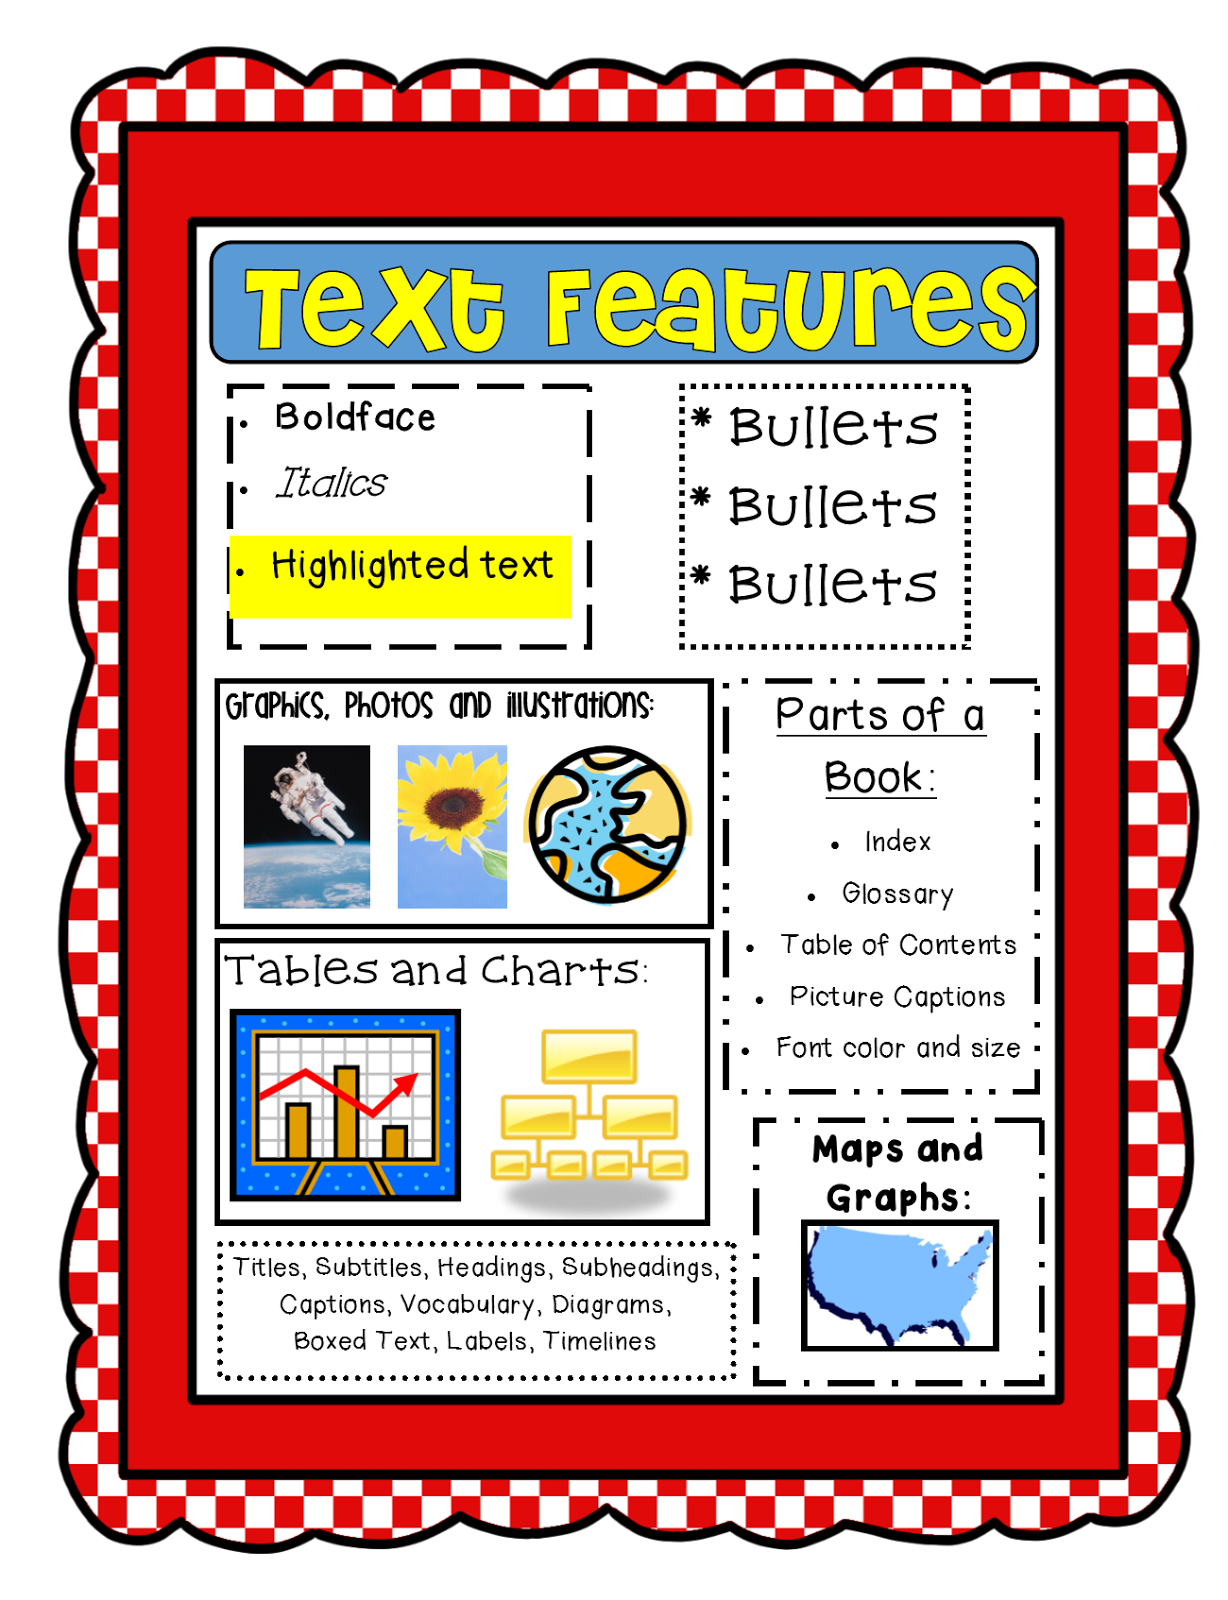 http://www.teacherspayteachers.com/Product/Text-Features-Freebie-CCSS-729802